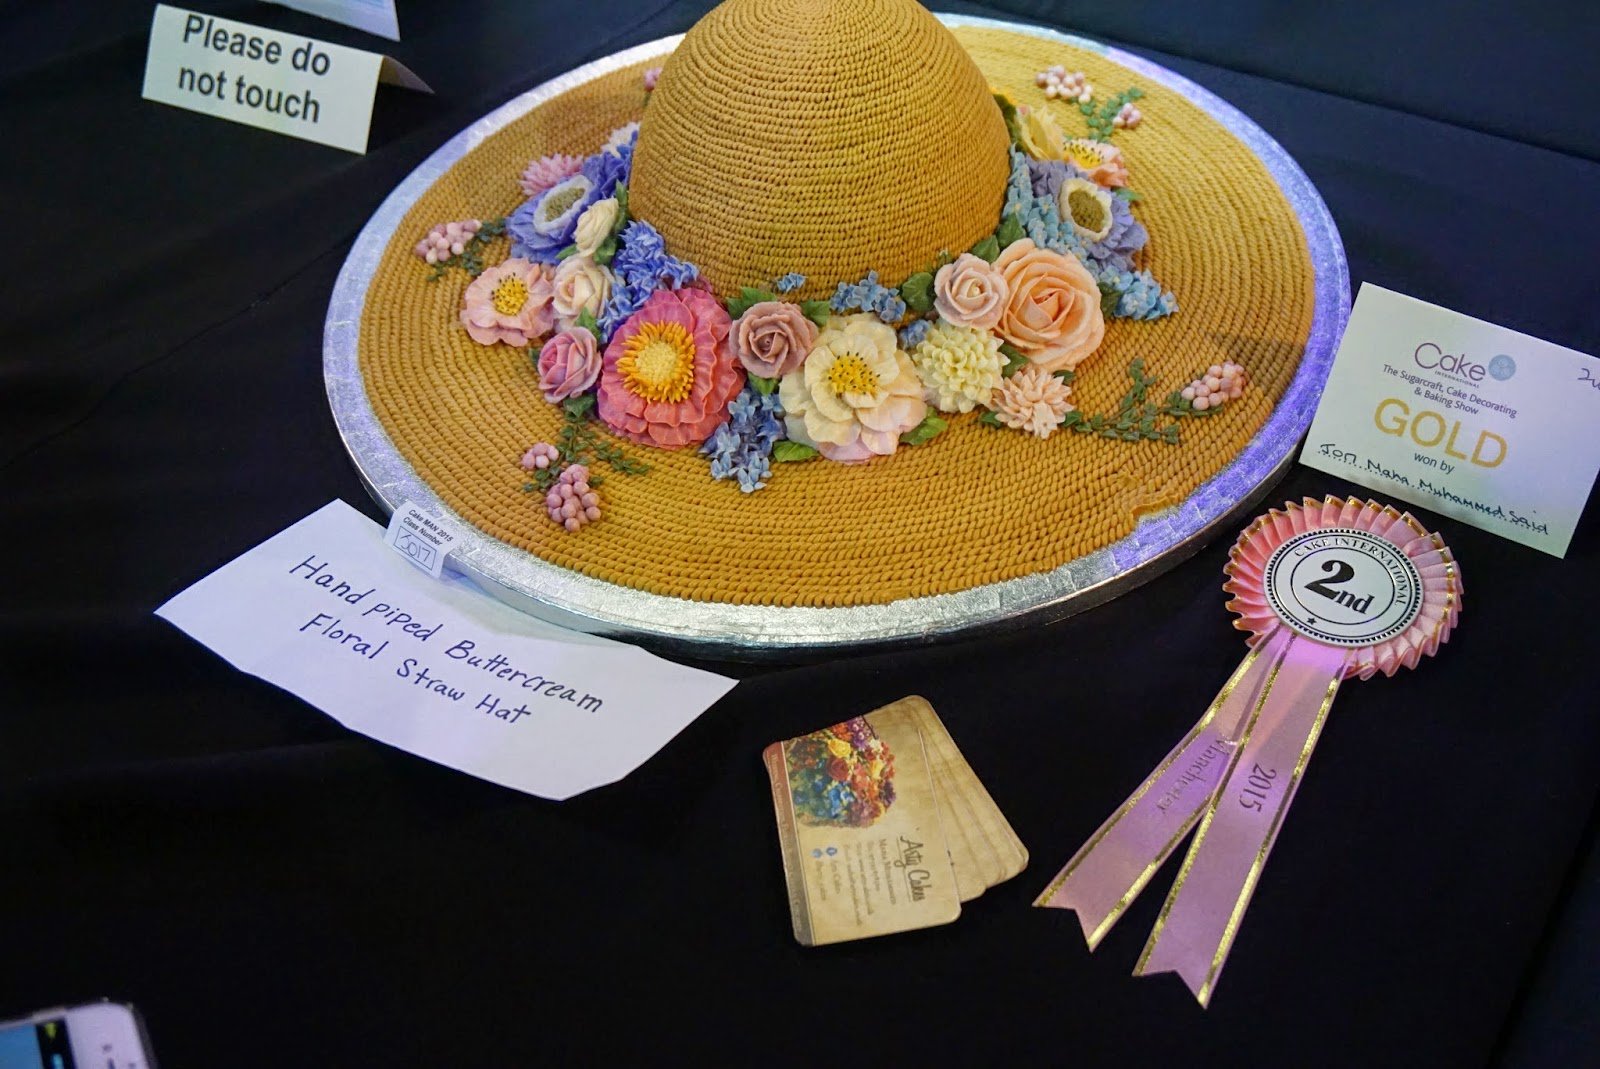 Cake International Show Manchester 2015 Hat Cake